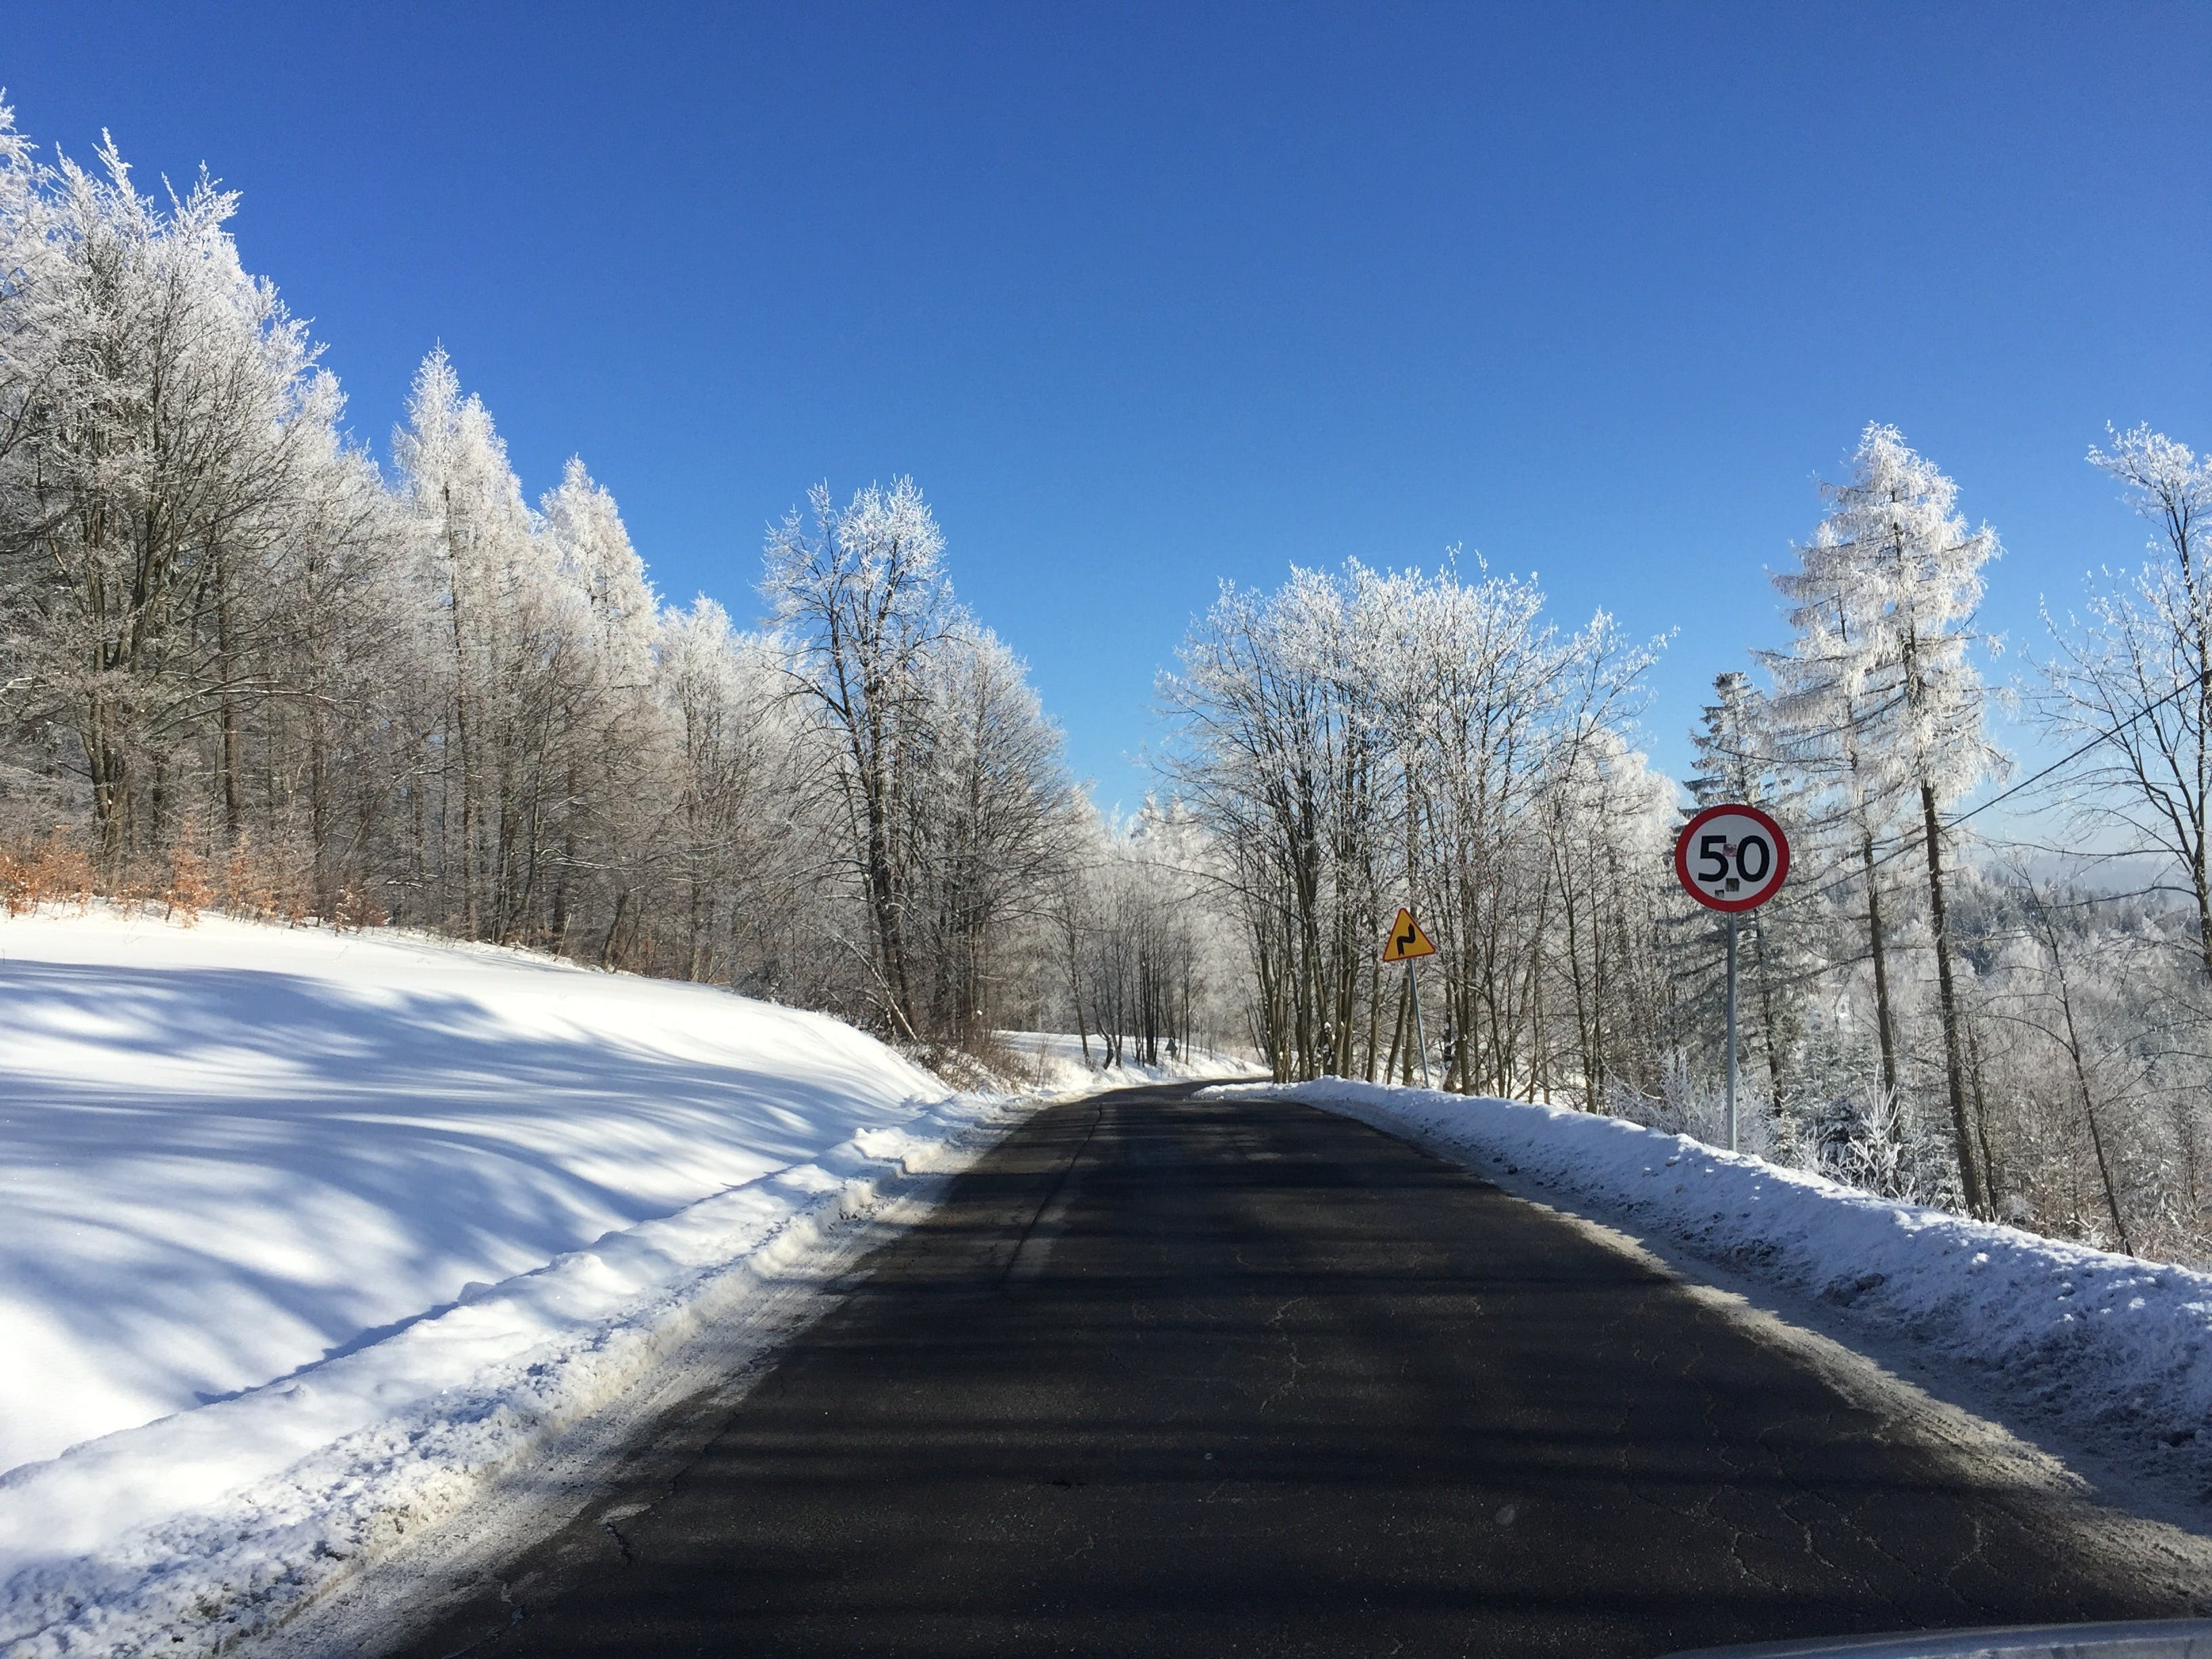 Free stock photo of road, speed limit, winter, winter road